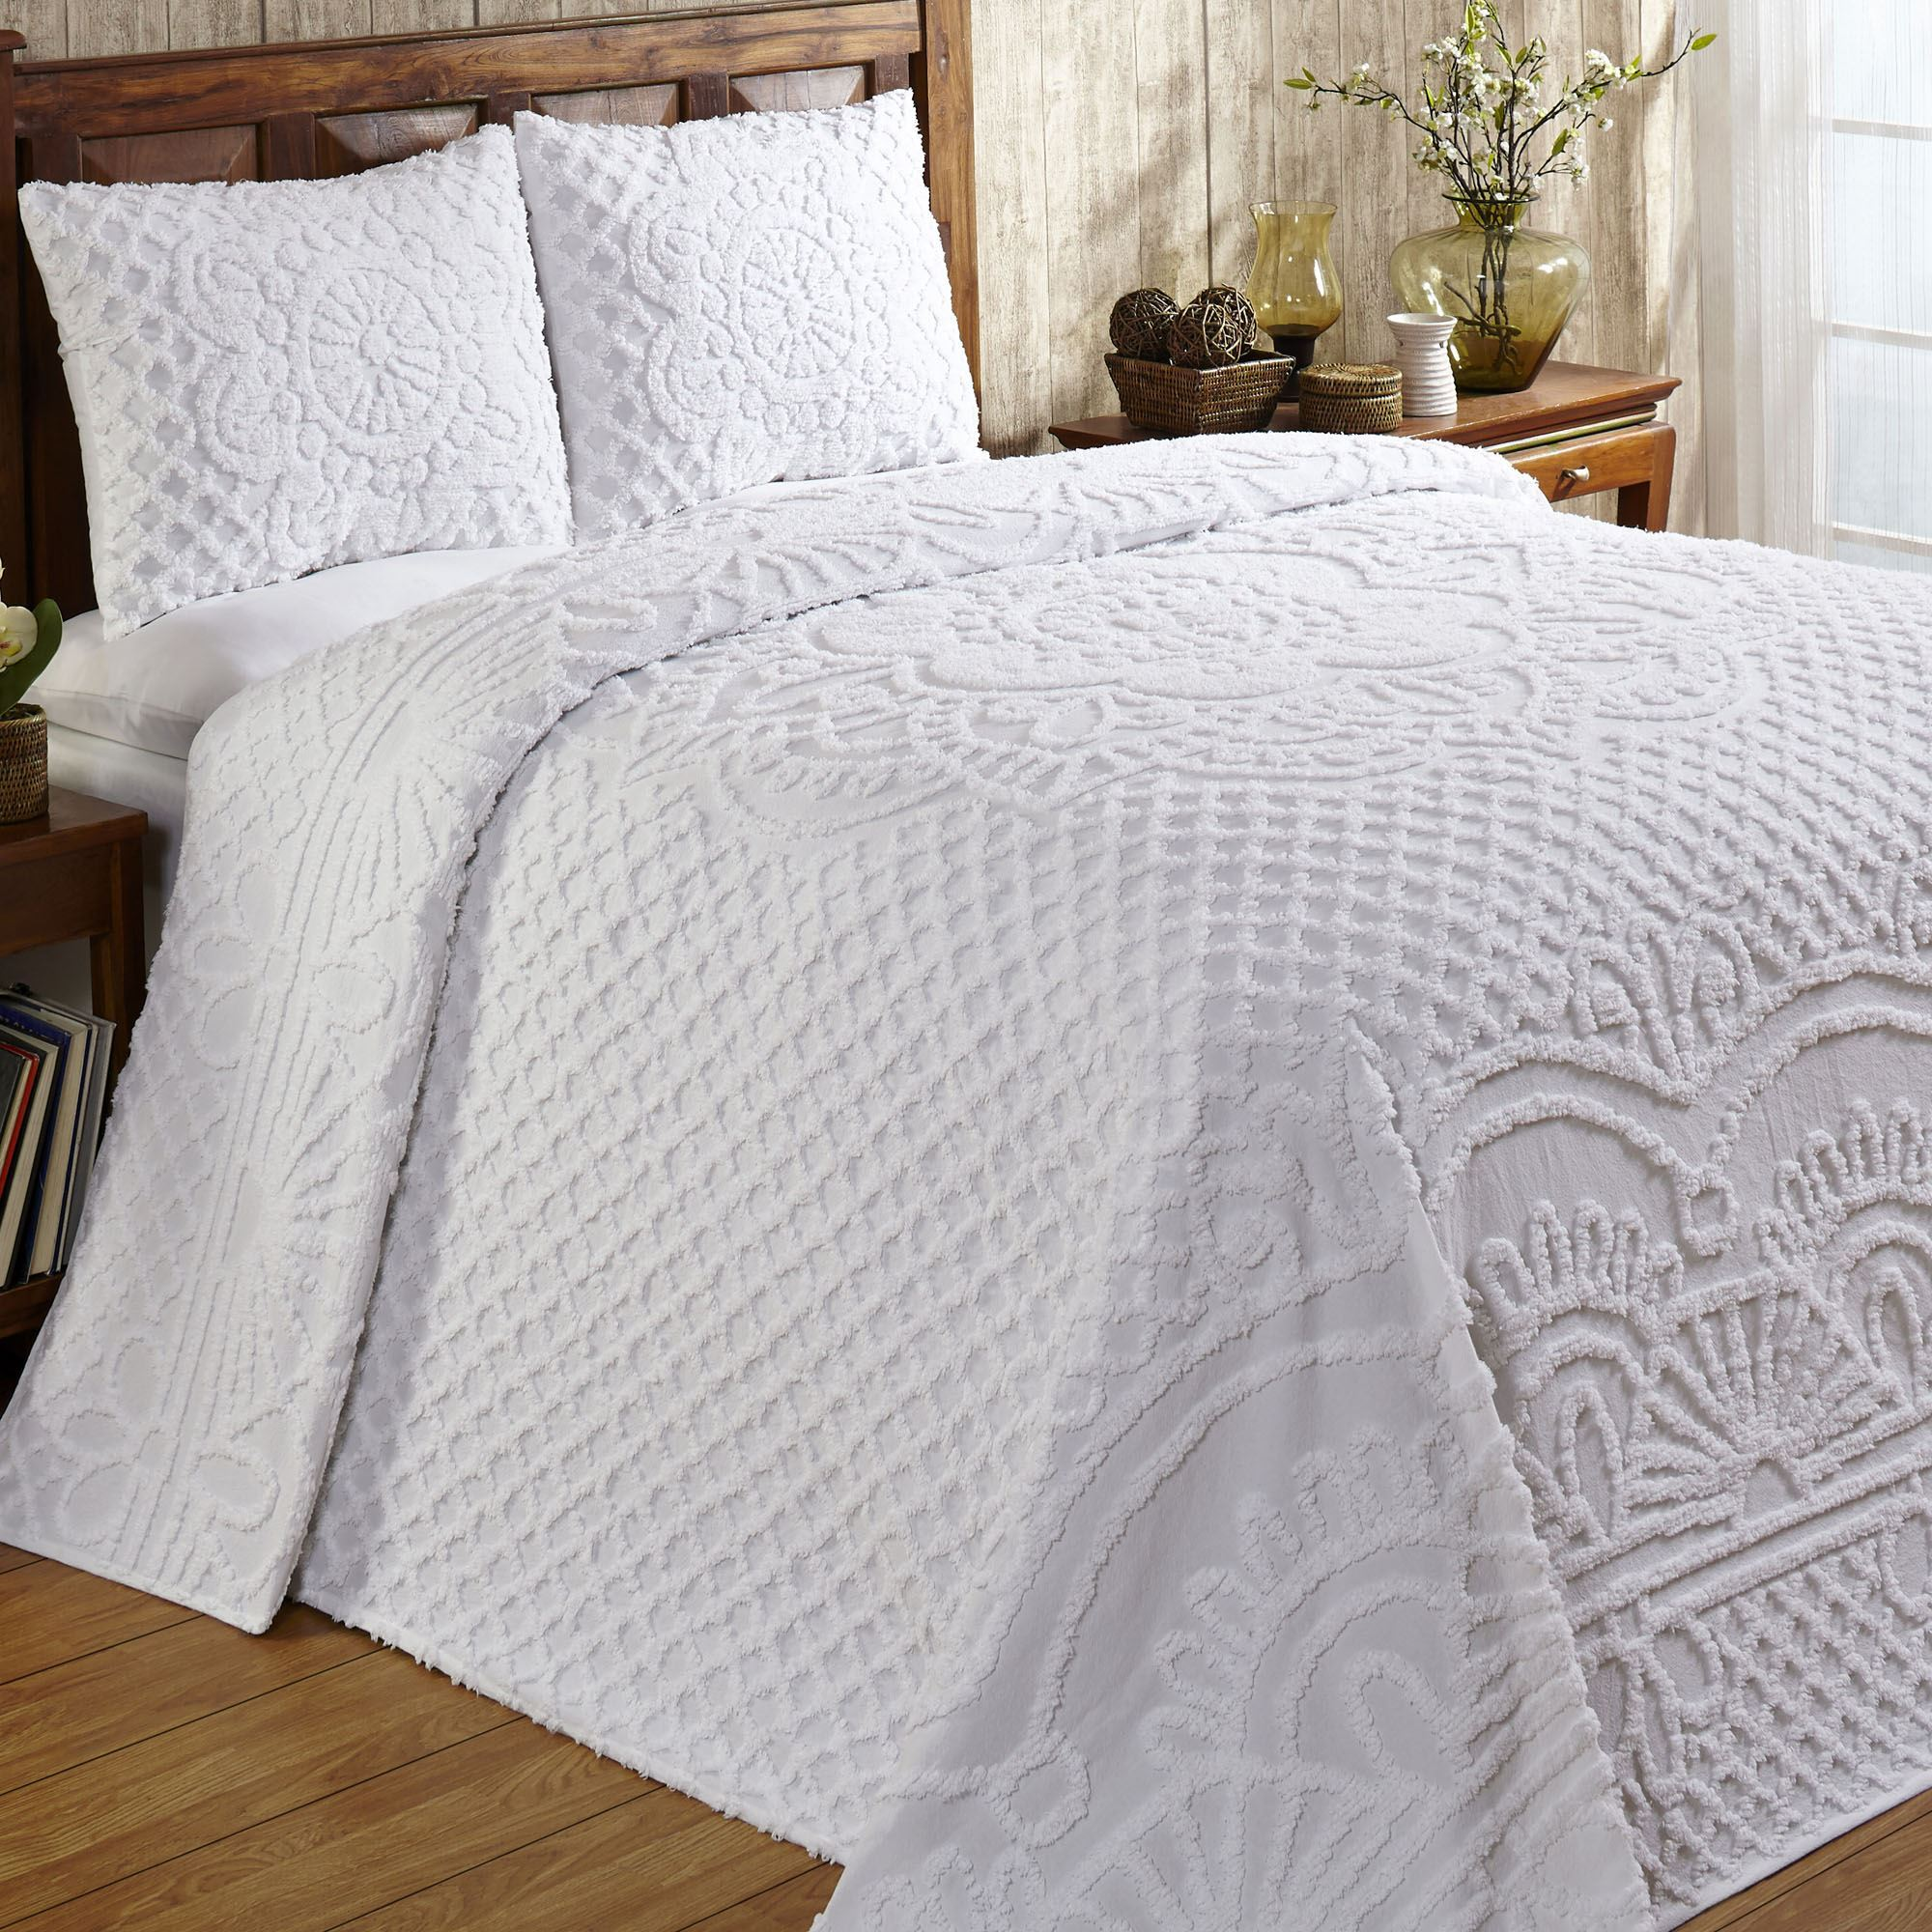 Trevor White or Ivory Lightweight Cotton Chenille Bedspread Set